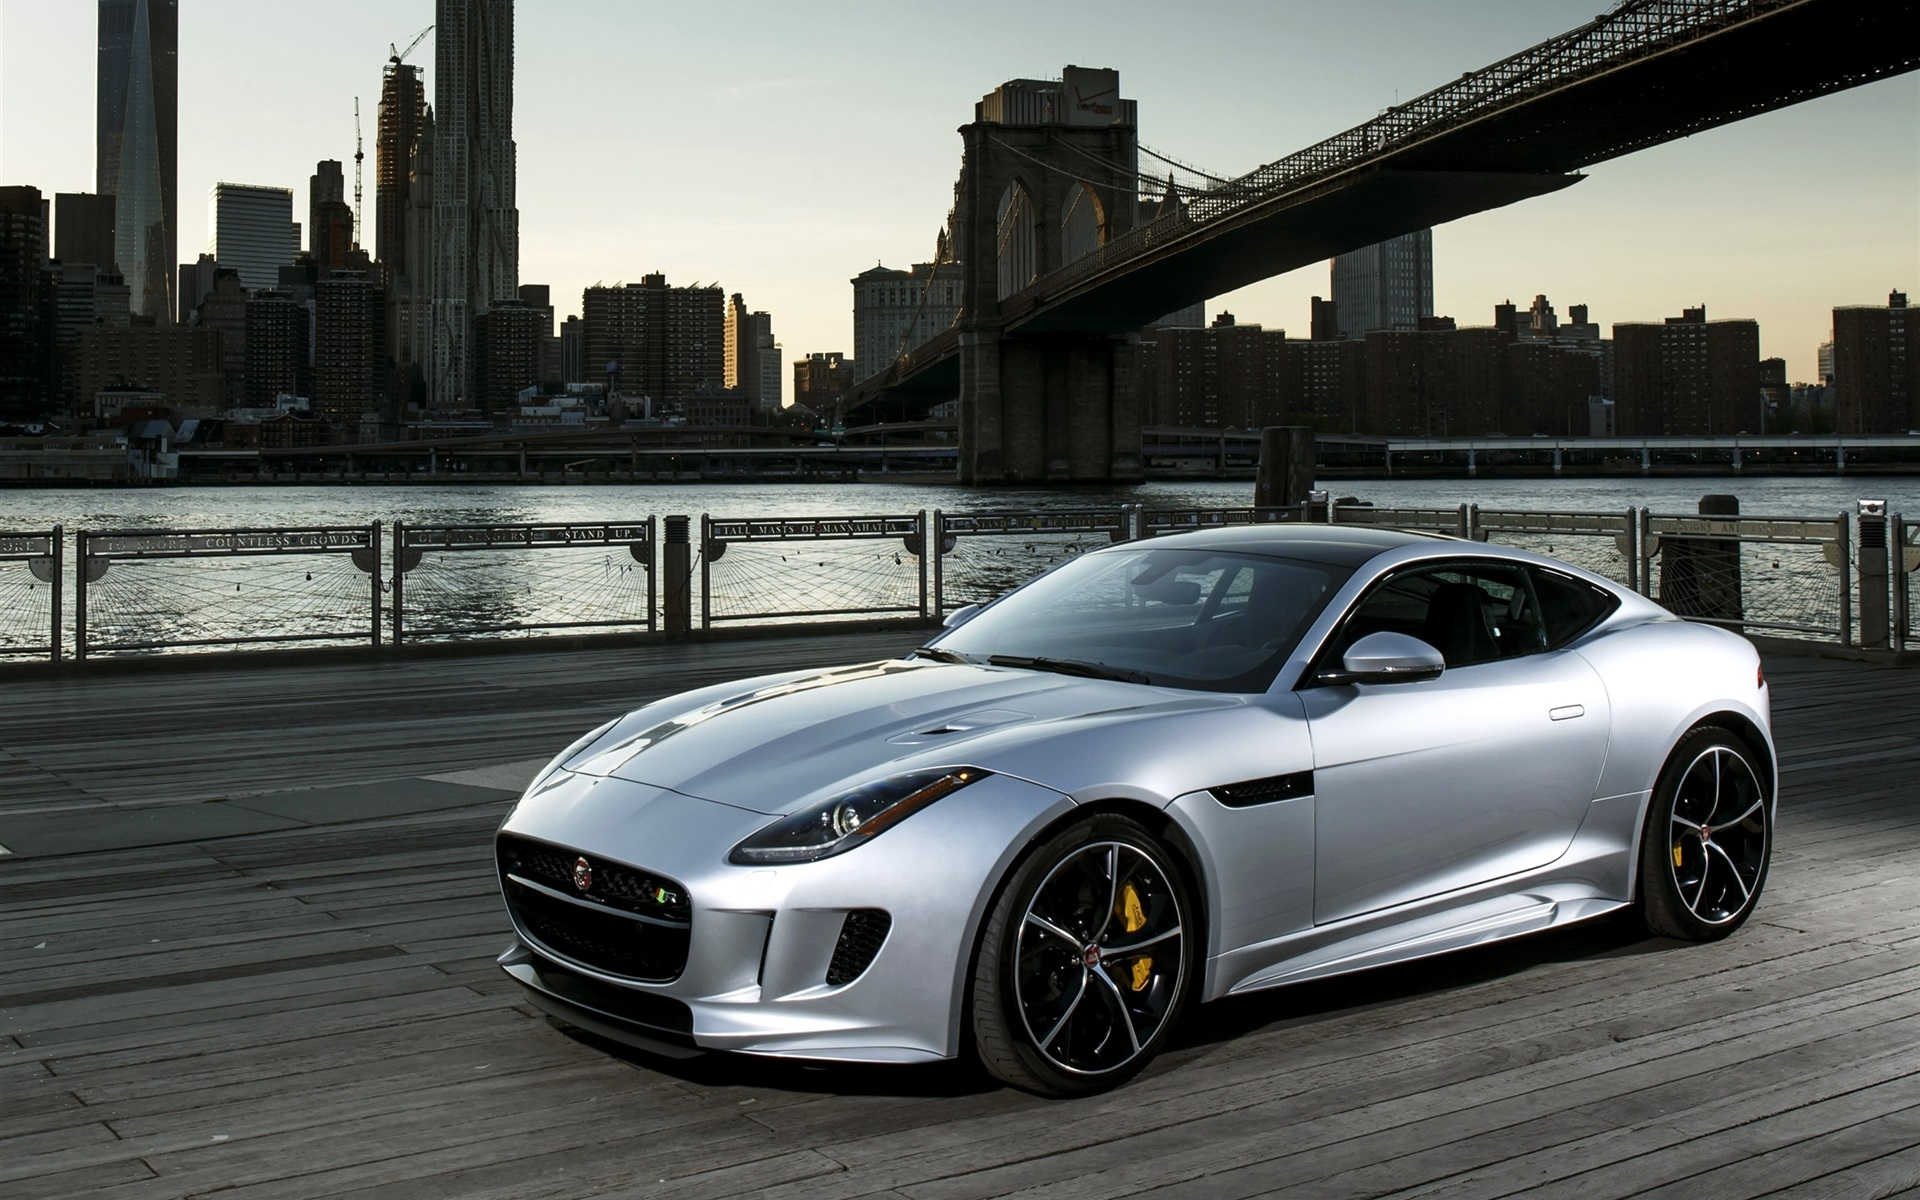 The Best 100 Hd And Qhd Wallpapers From 2015 Works For: Download Wallpaper 1920x1200 2015 Jaguar F-Type R Silver